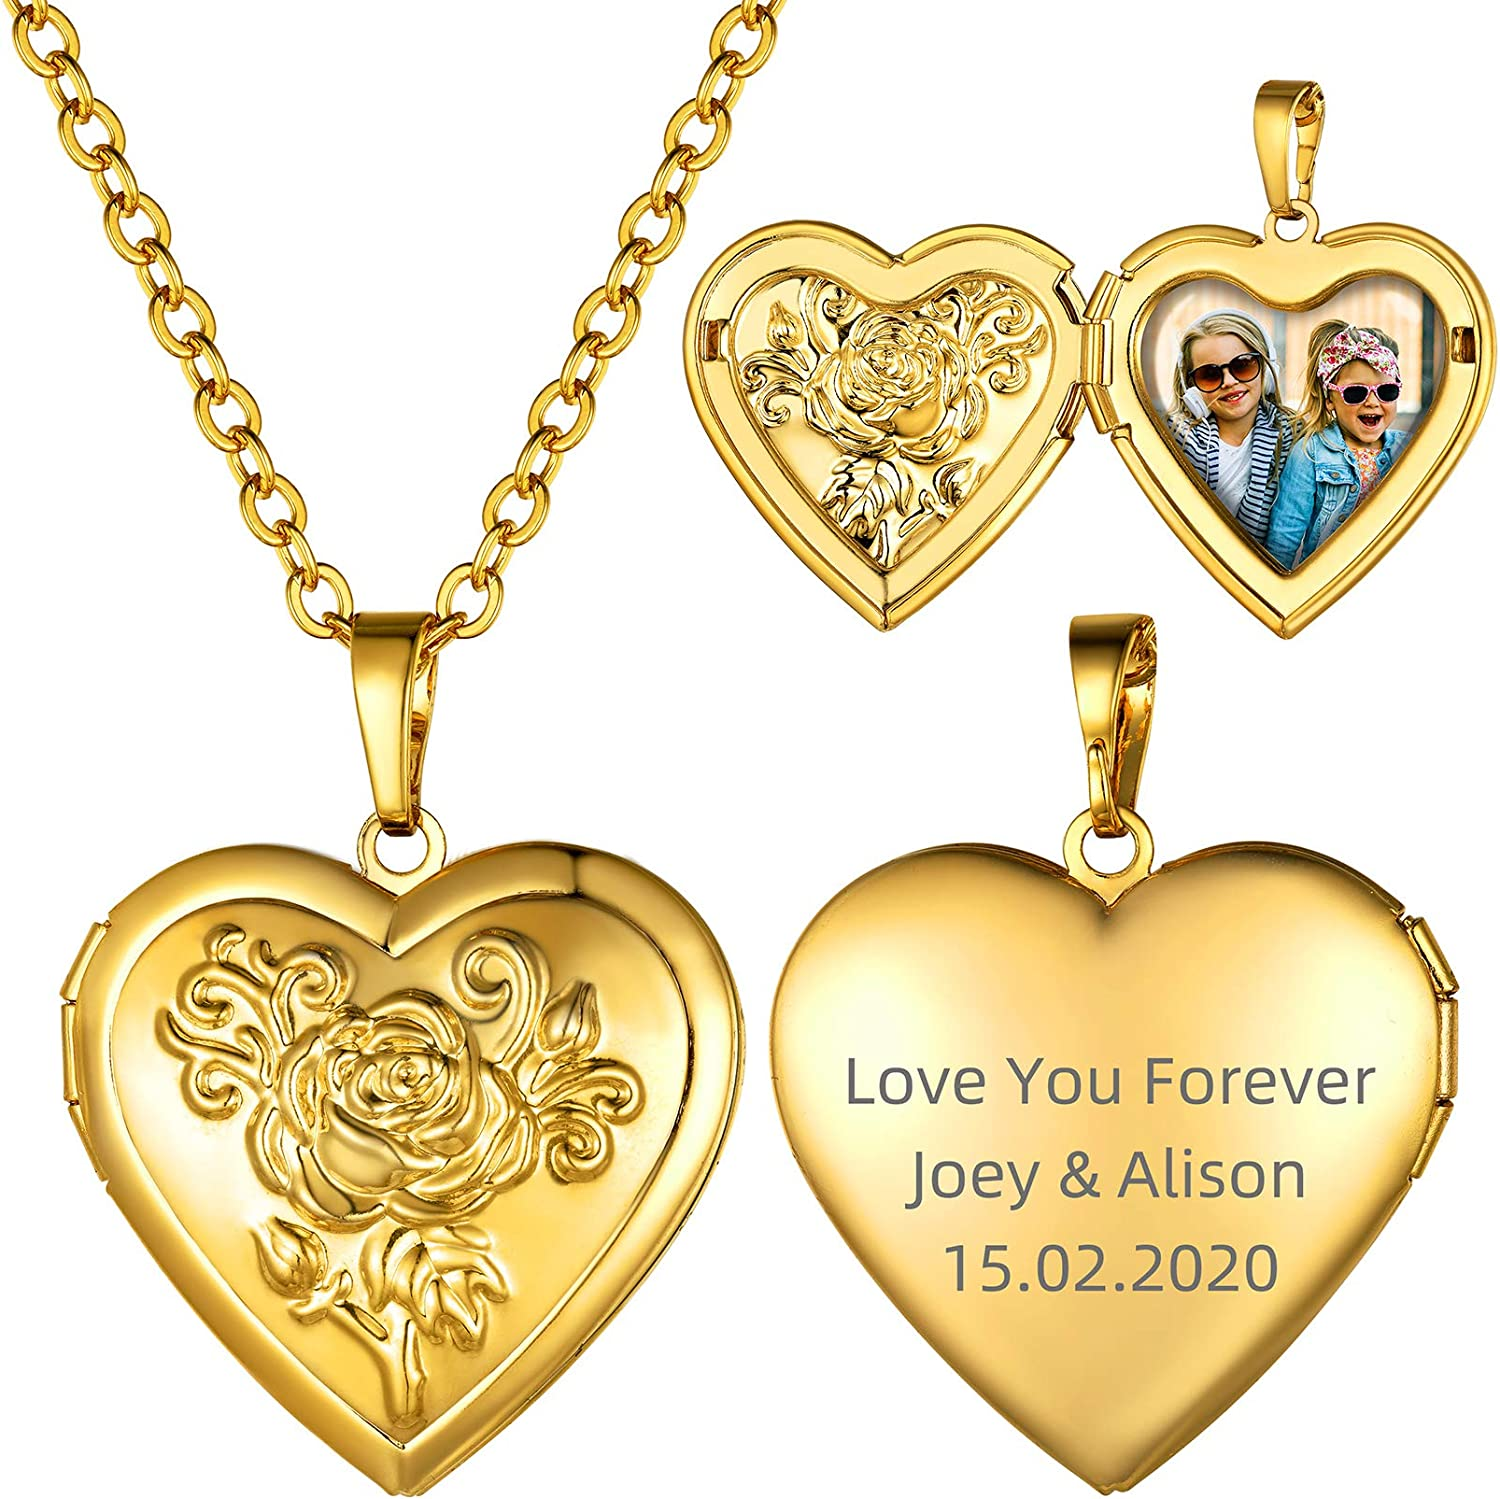 GOLDCHIC JEWELRY Heart Locket Necklace 18K Plated Platinum Easy-to-use Gold Sale special price